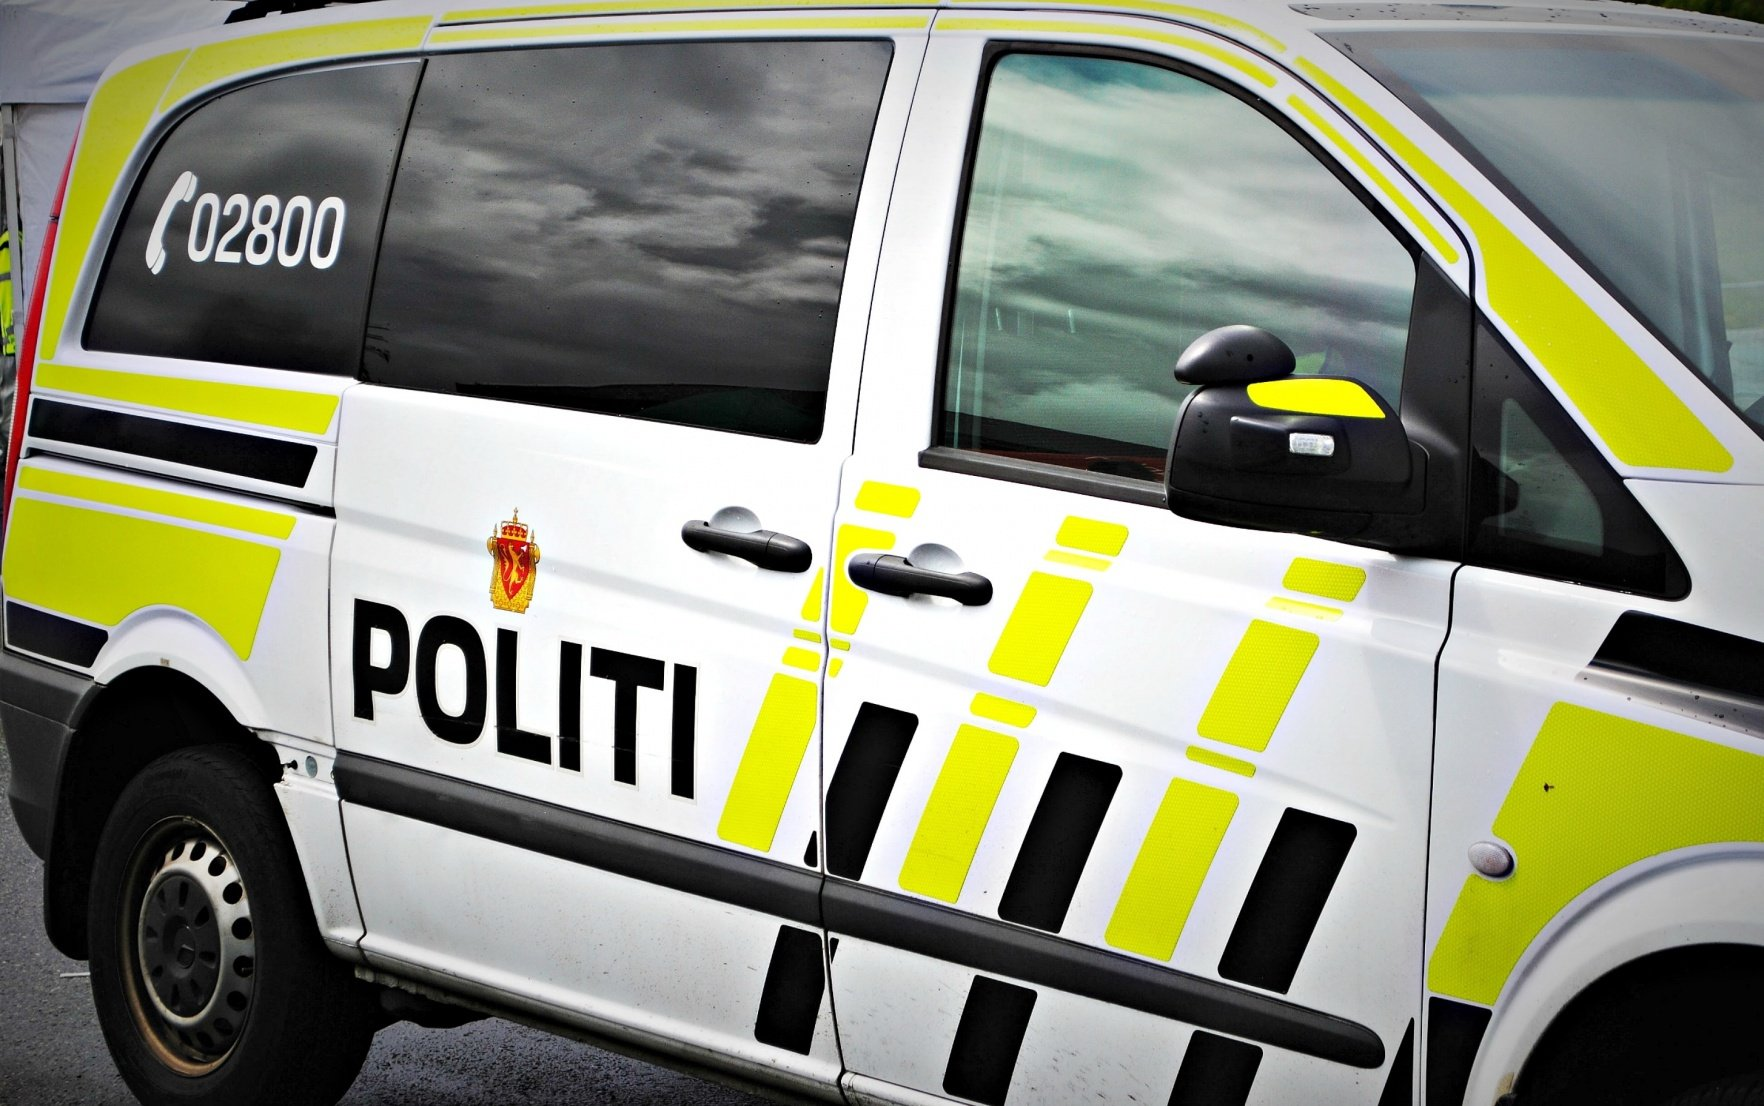 Norway Police car